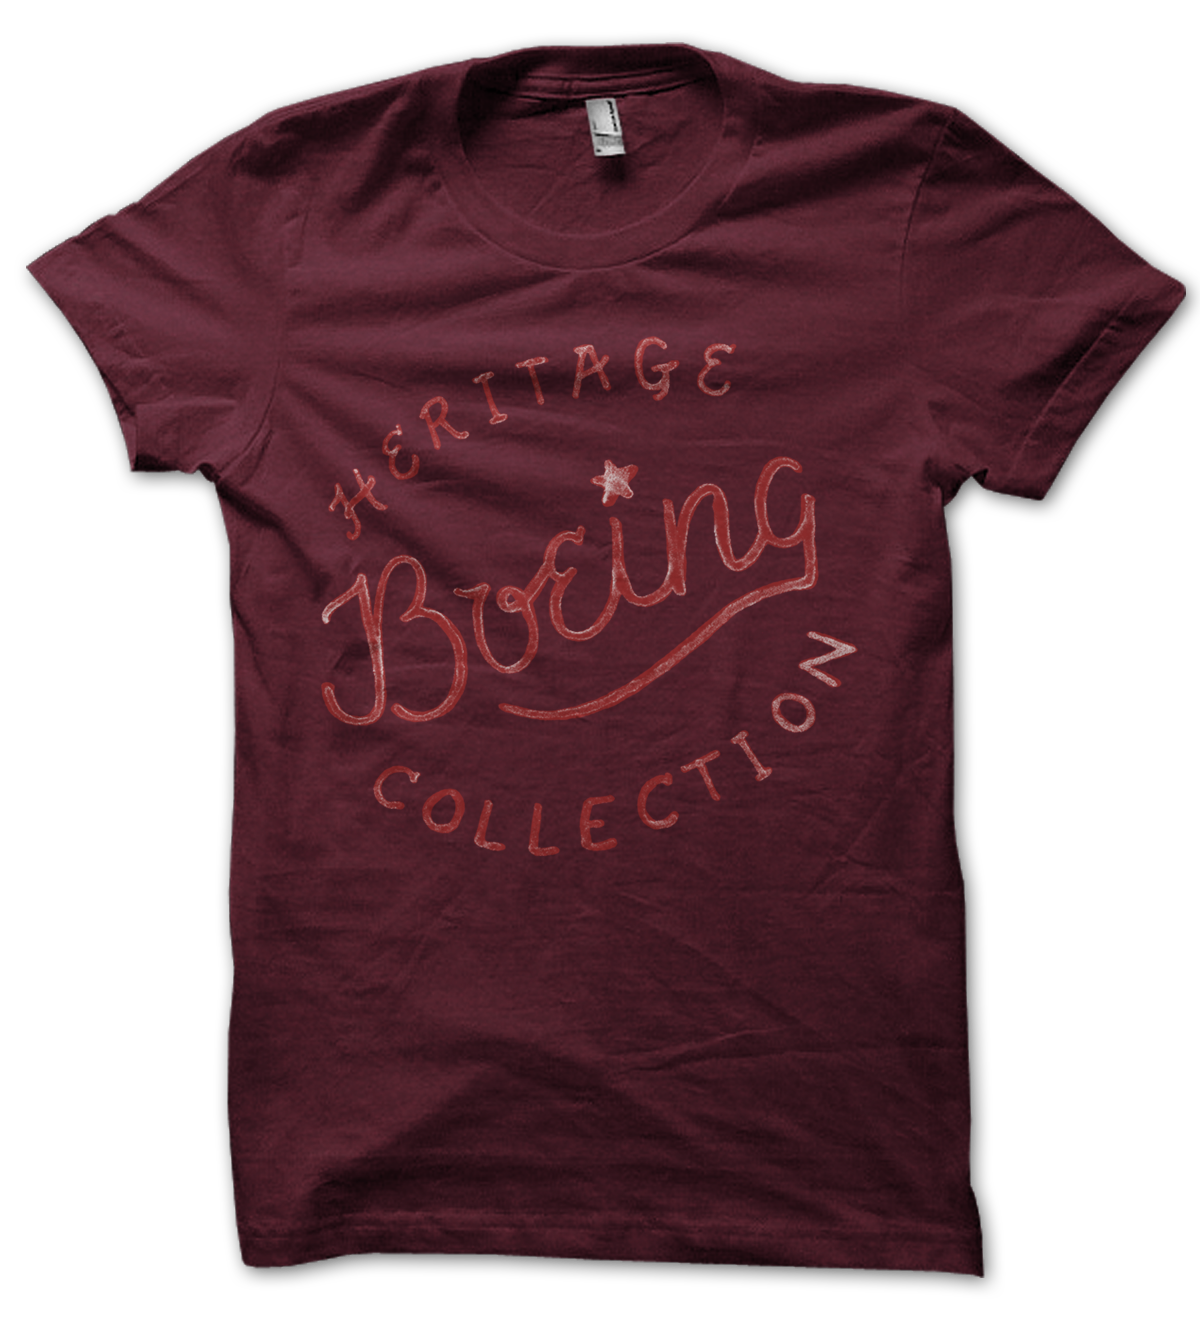 Boeing Heritage Collection